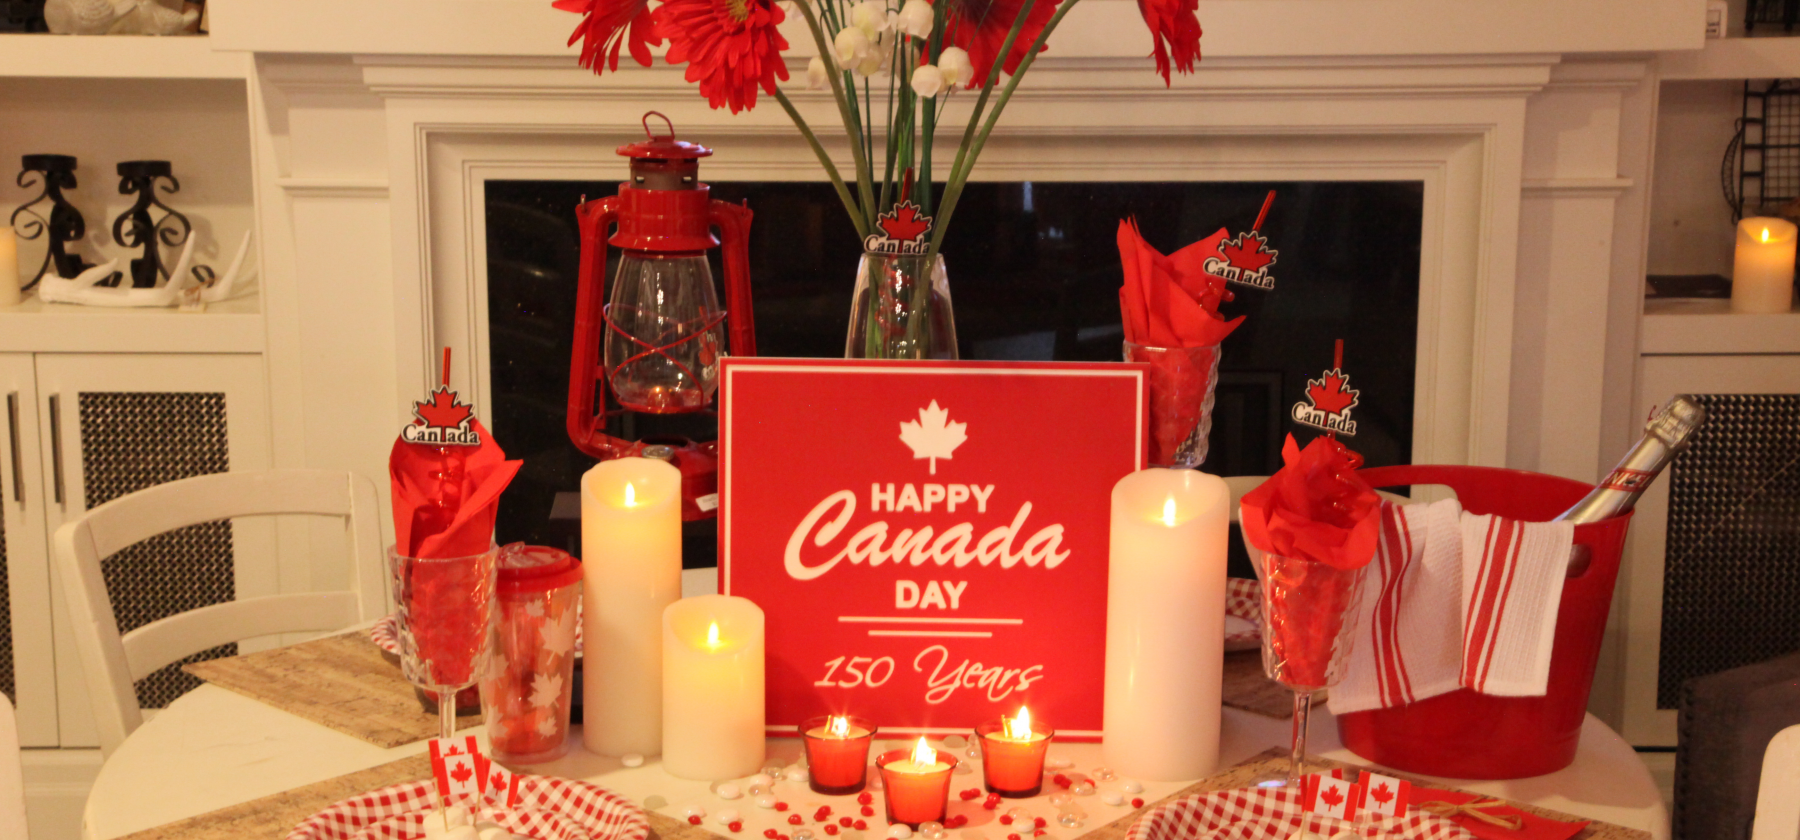 Canada Day Featured Image